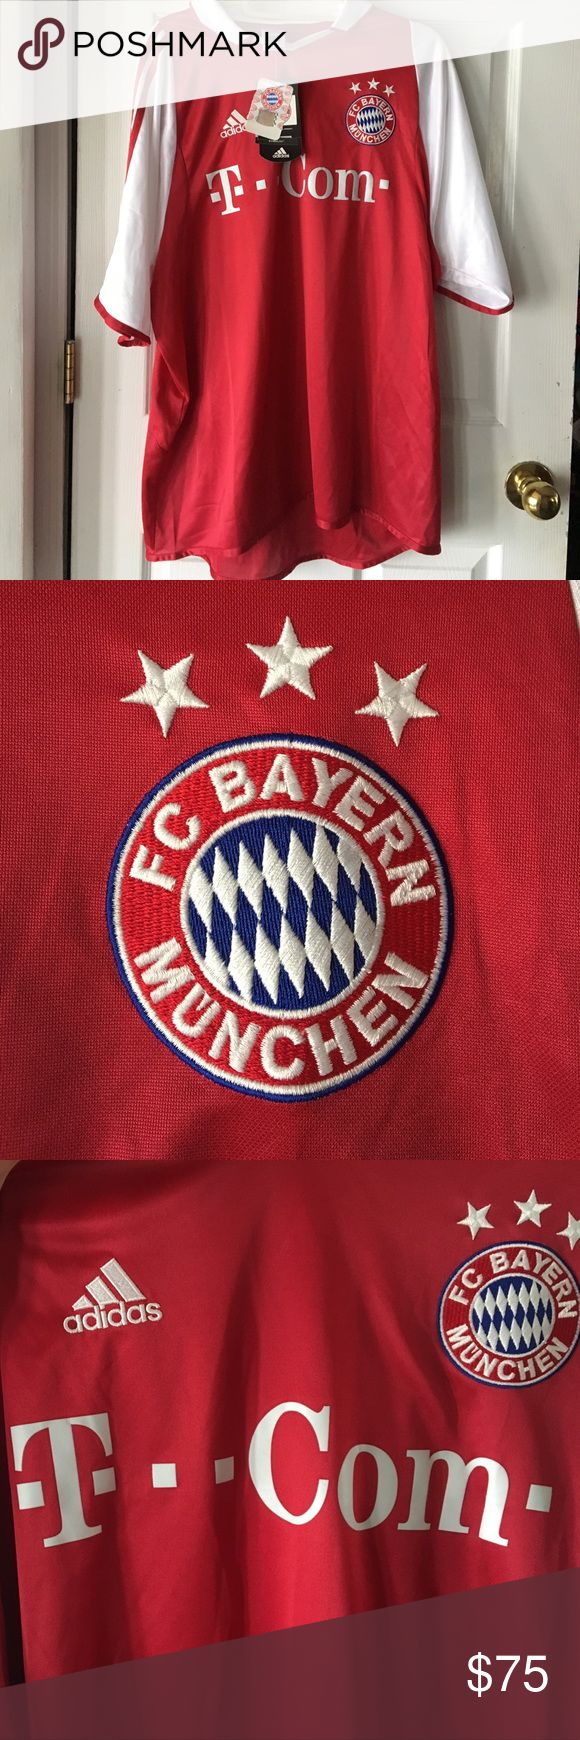 ADIDAS jersey! FC BAYER MUNCHEN! Brand new with tags! Have 3, all XL! Would make a perfect Father's Day present which is right around the corner! Get them while you can! T-Com- adidas Shirts